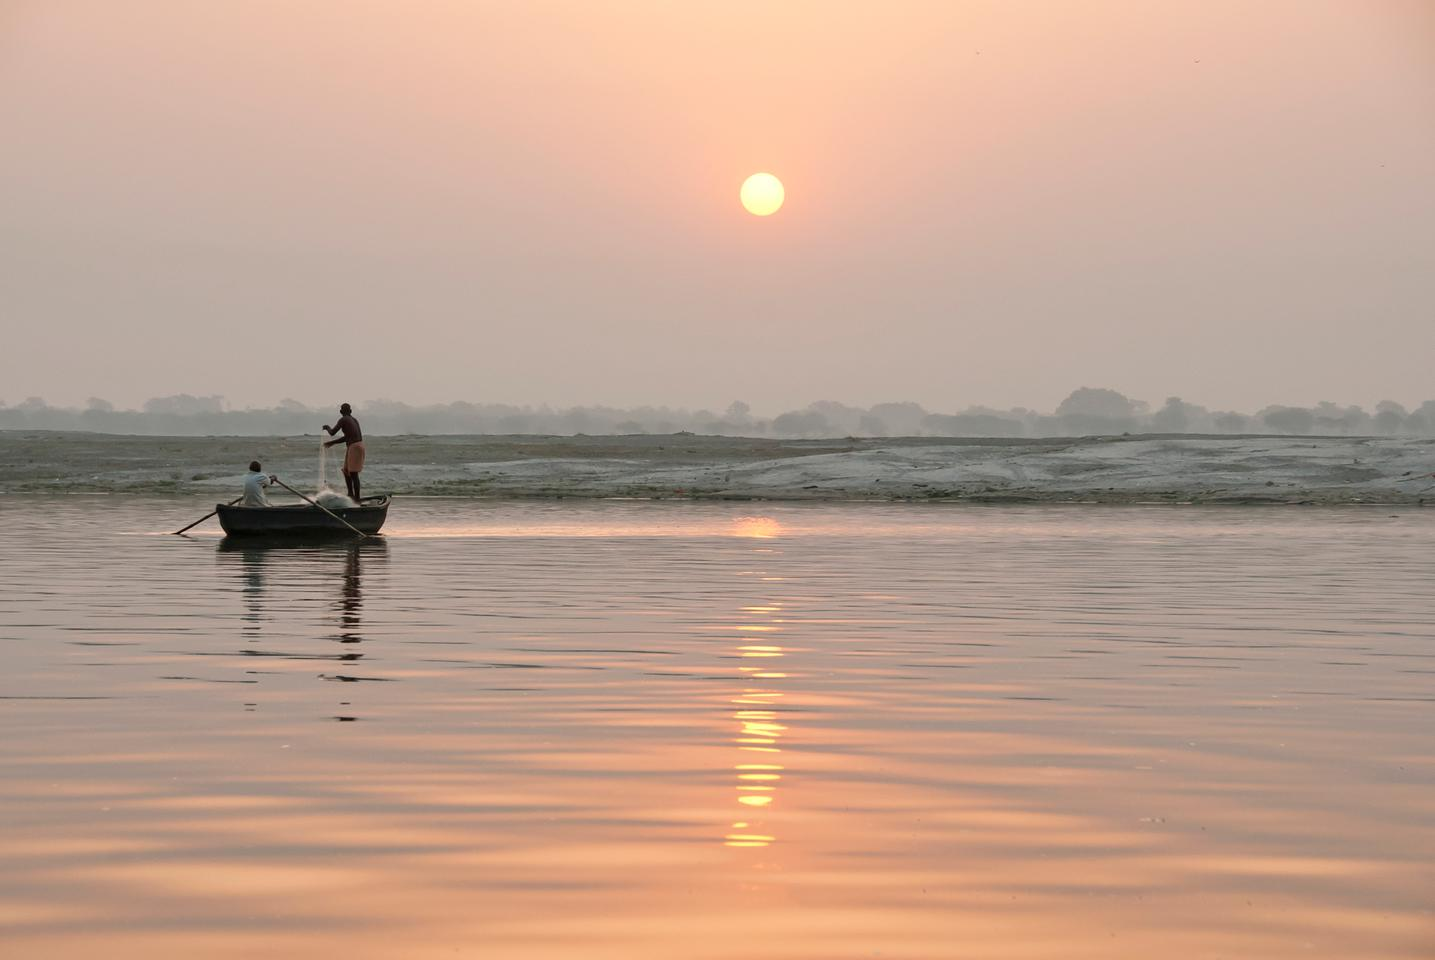 Scientists have found that billions of plastic particles enter the ocean each day via the Ganges river